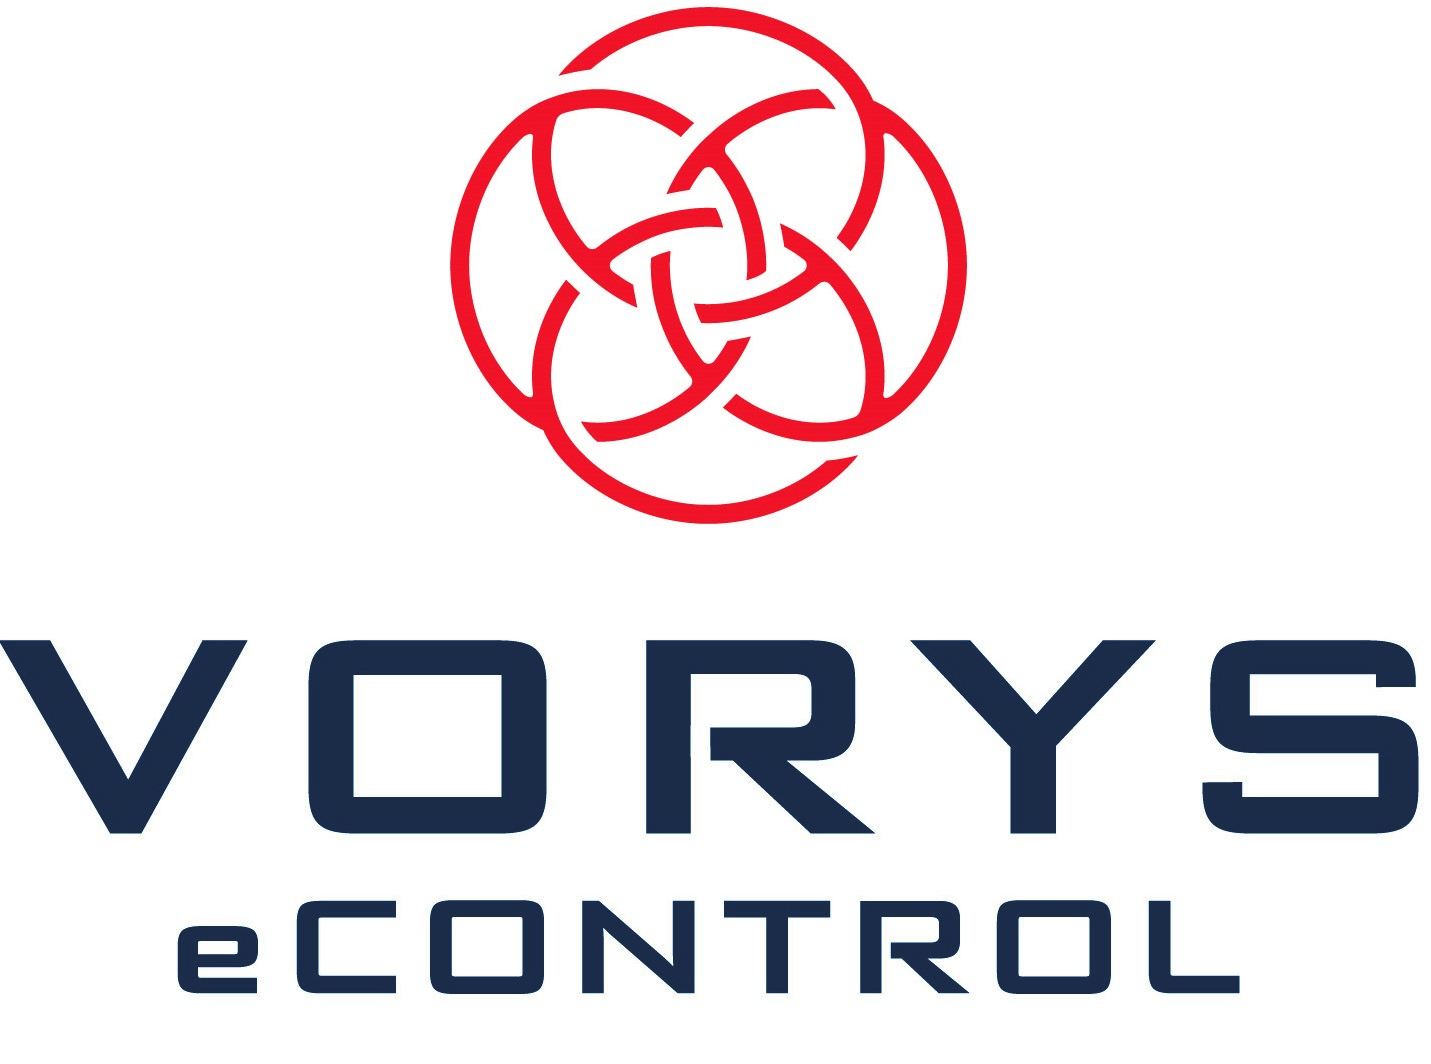 Vorys_eControl_Logo_NoTagline_Stacked_FullColor_CROPPED